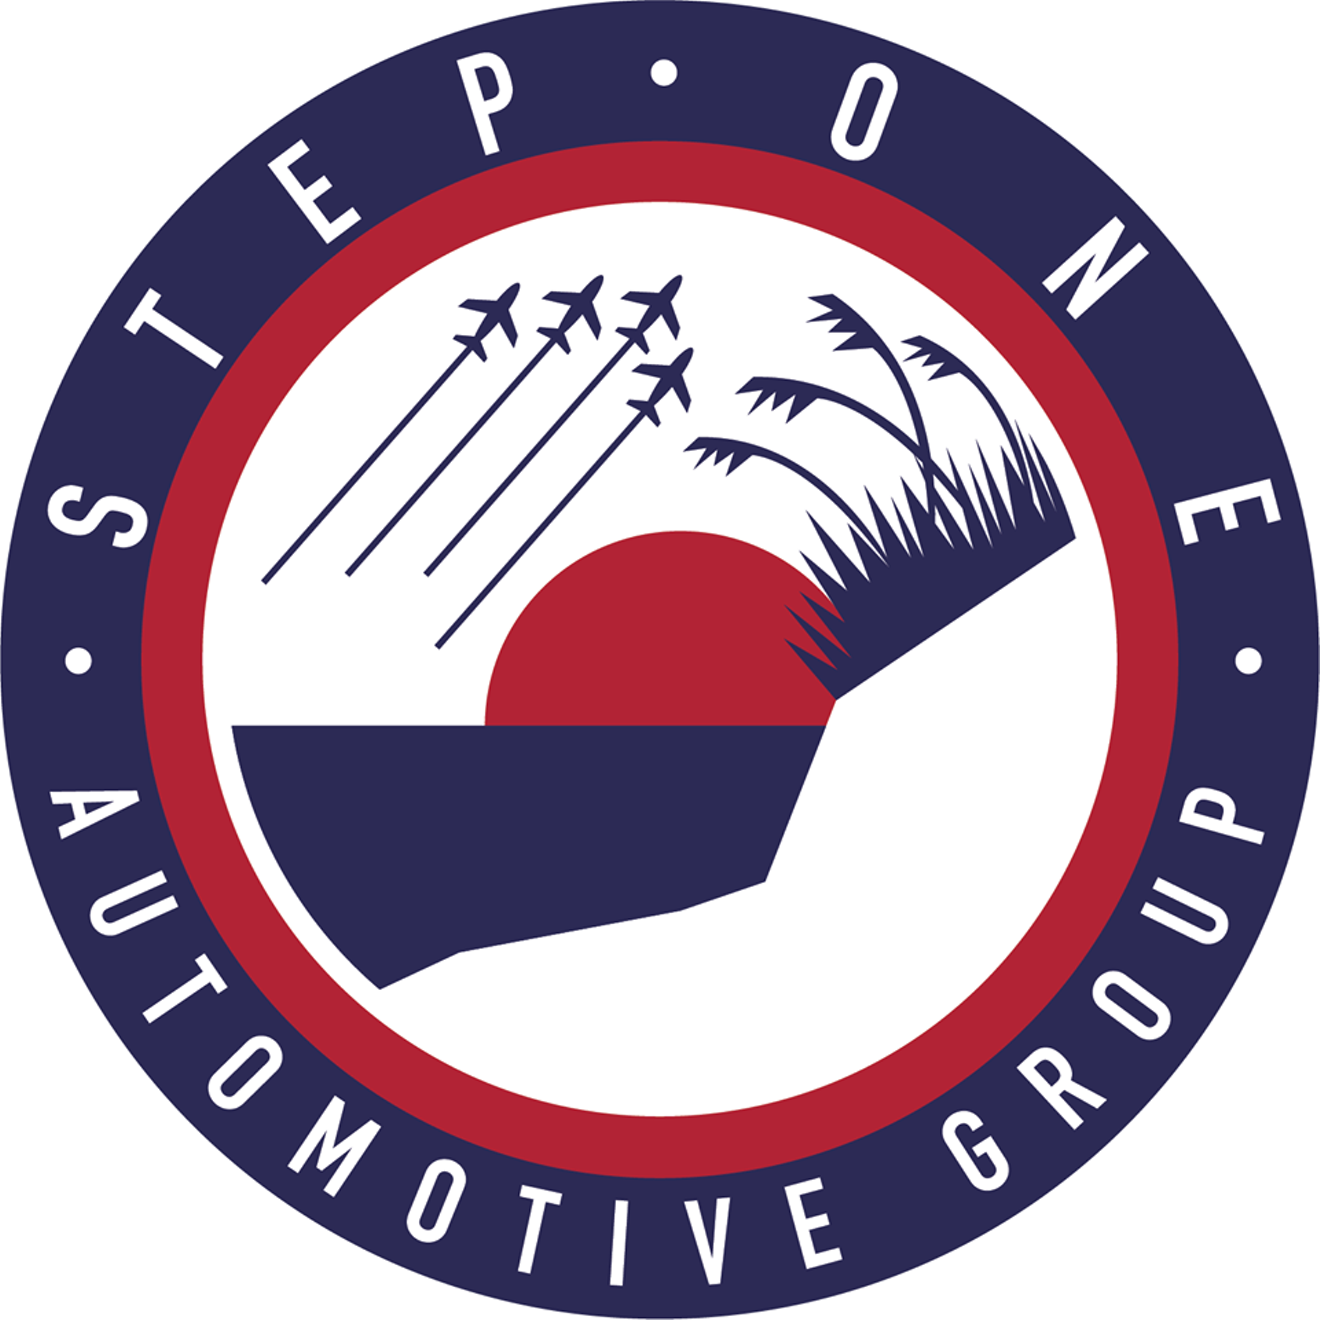 Step One Automotive Group One Year Anniversary Celebration